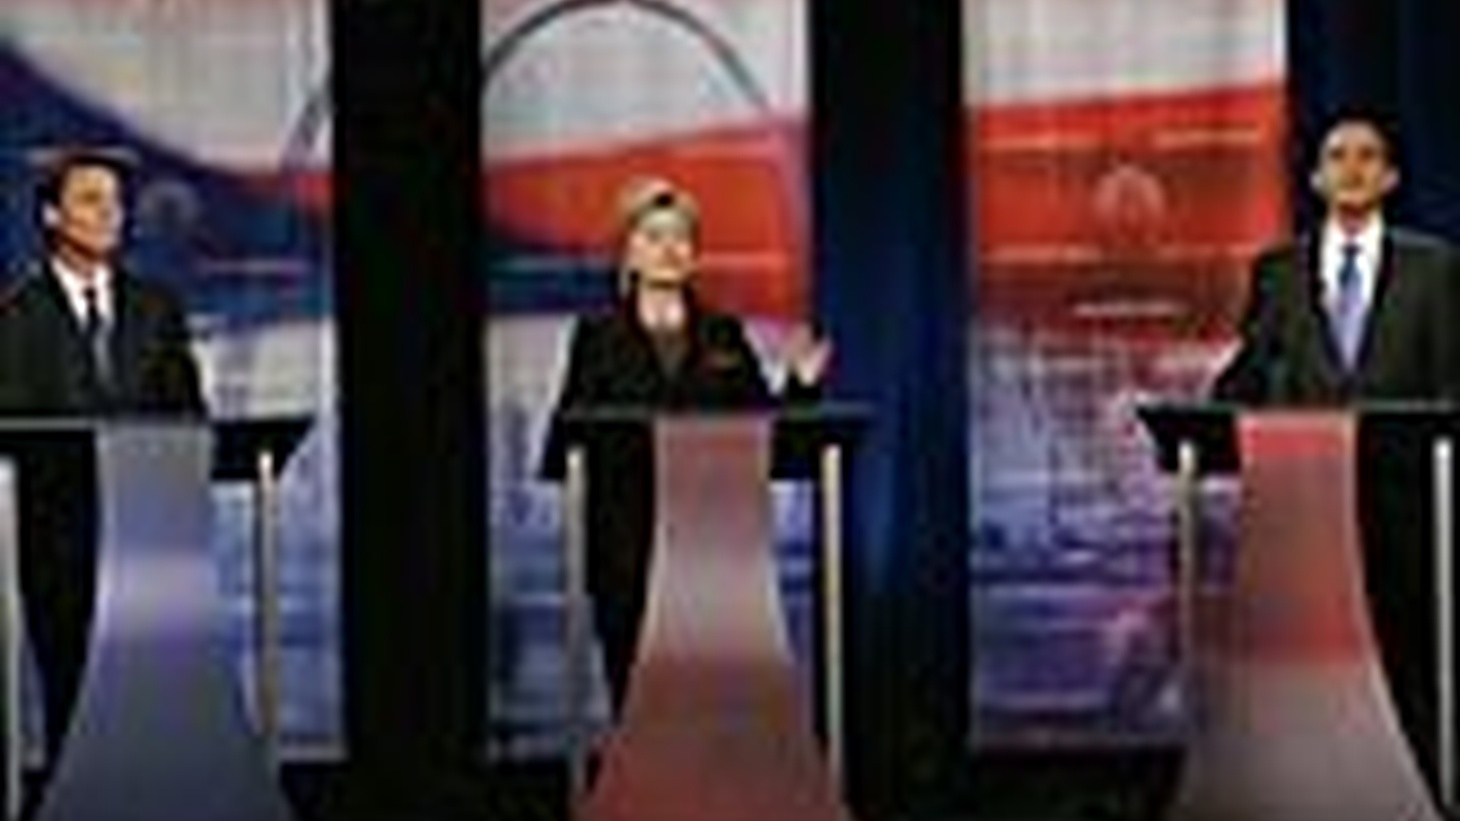 Last night's Democratic presidential debate was the liveliest yet. Also, verdicts in the 2004 Madrid subway bombing, and the Federal Reserve on interest rates.